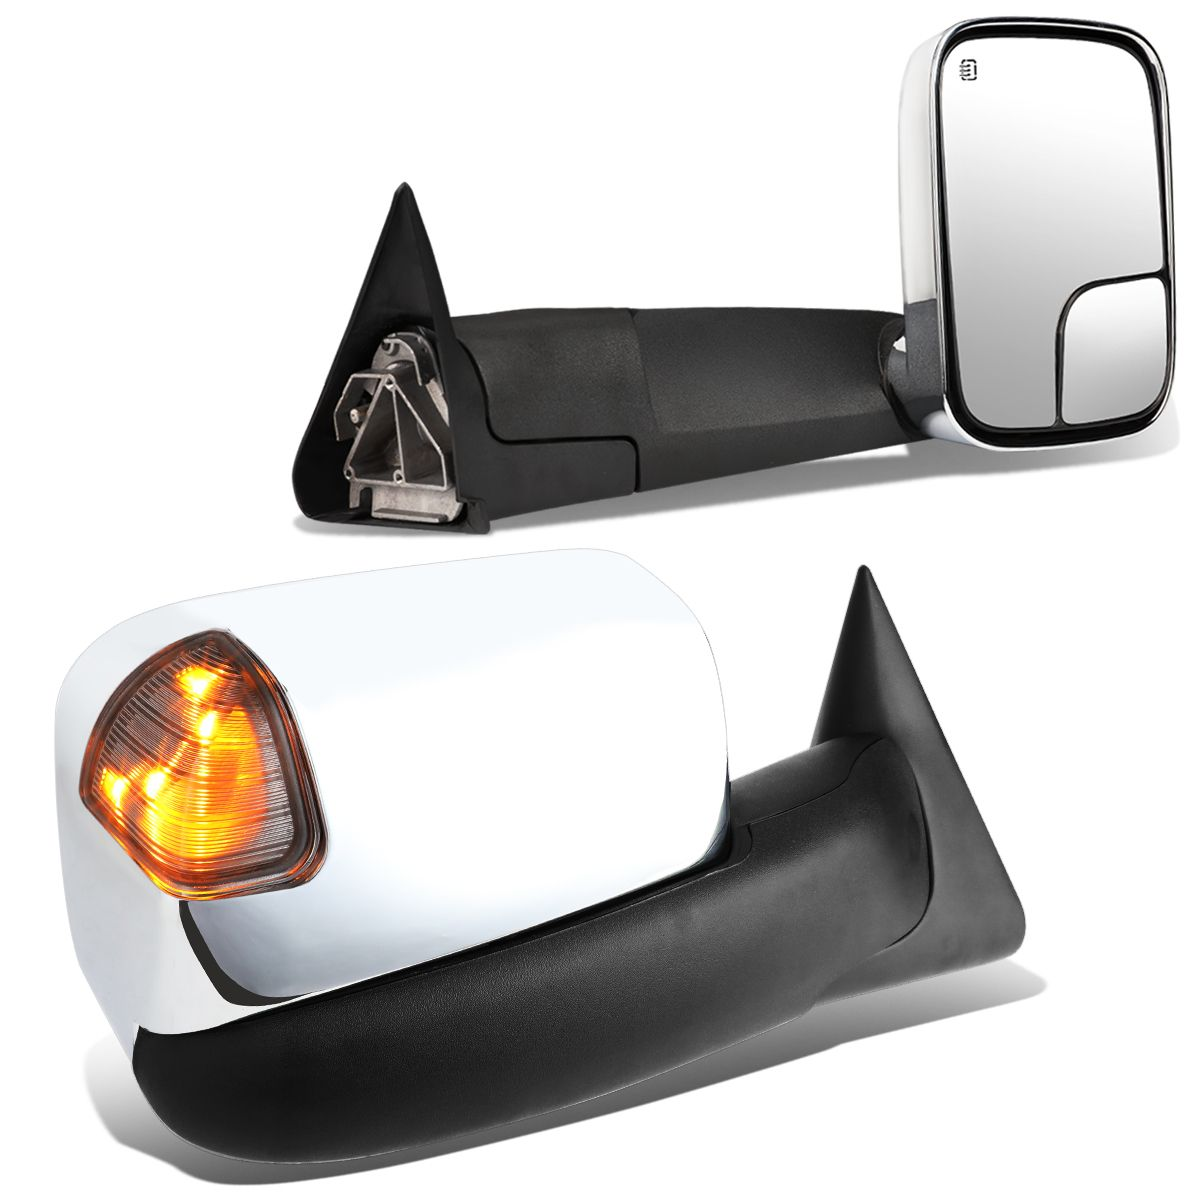 Details about  /For 98-01 Ram 1500 98-02 2500 3500 Power Heated Adjusting Tow Mirrors Set